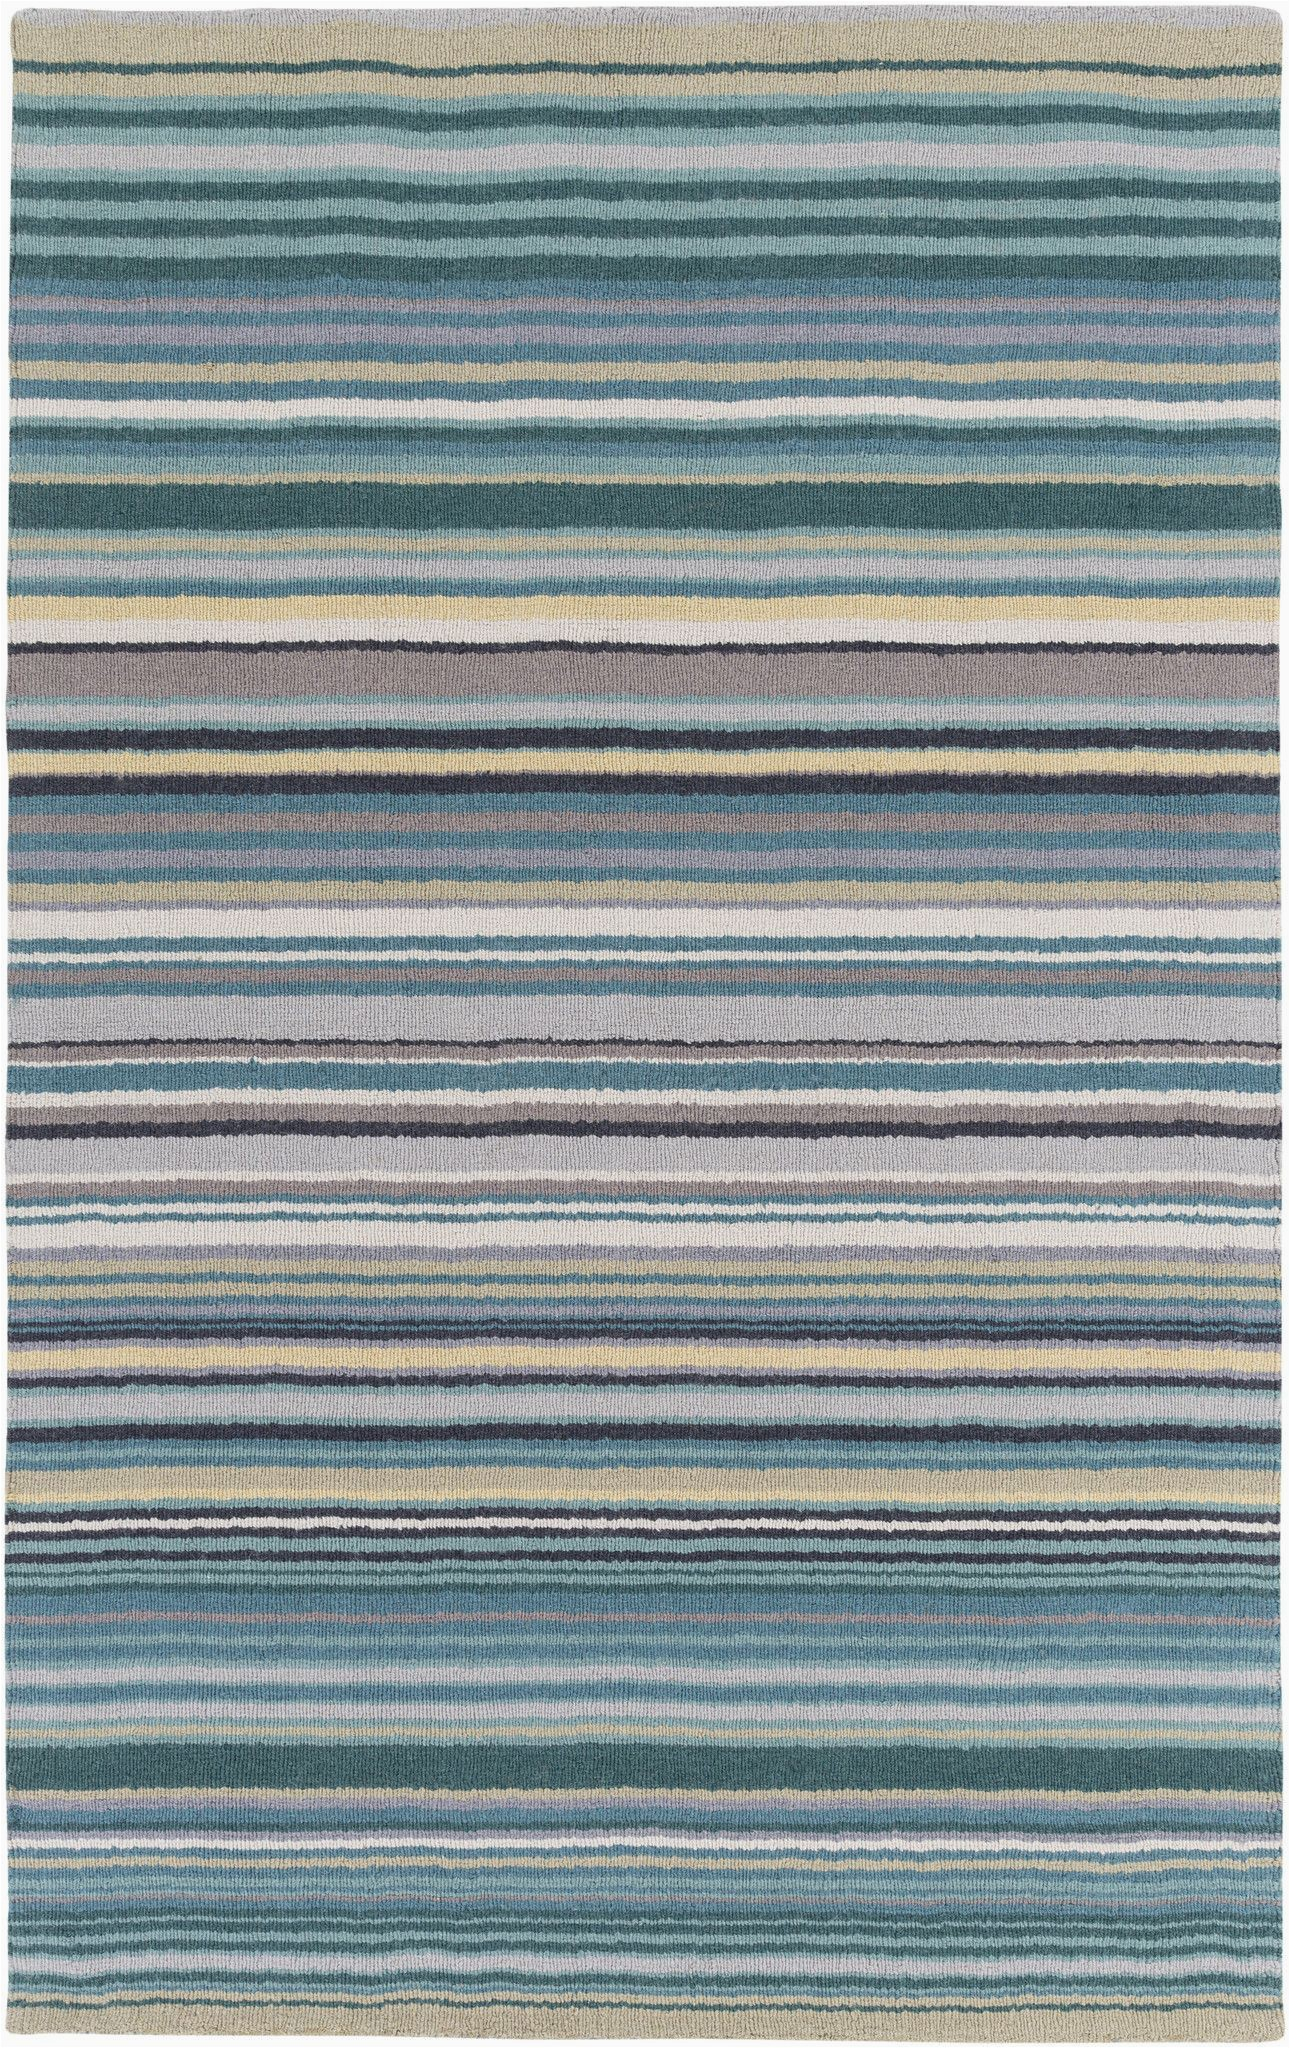 Blue Green Striped Rug Surya Blowout Sale Up to Off M5419 23 Mystique Stripes